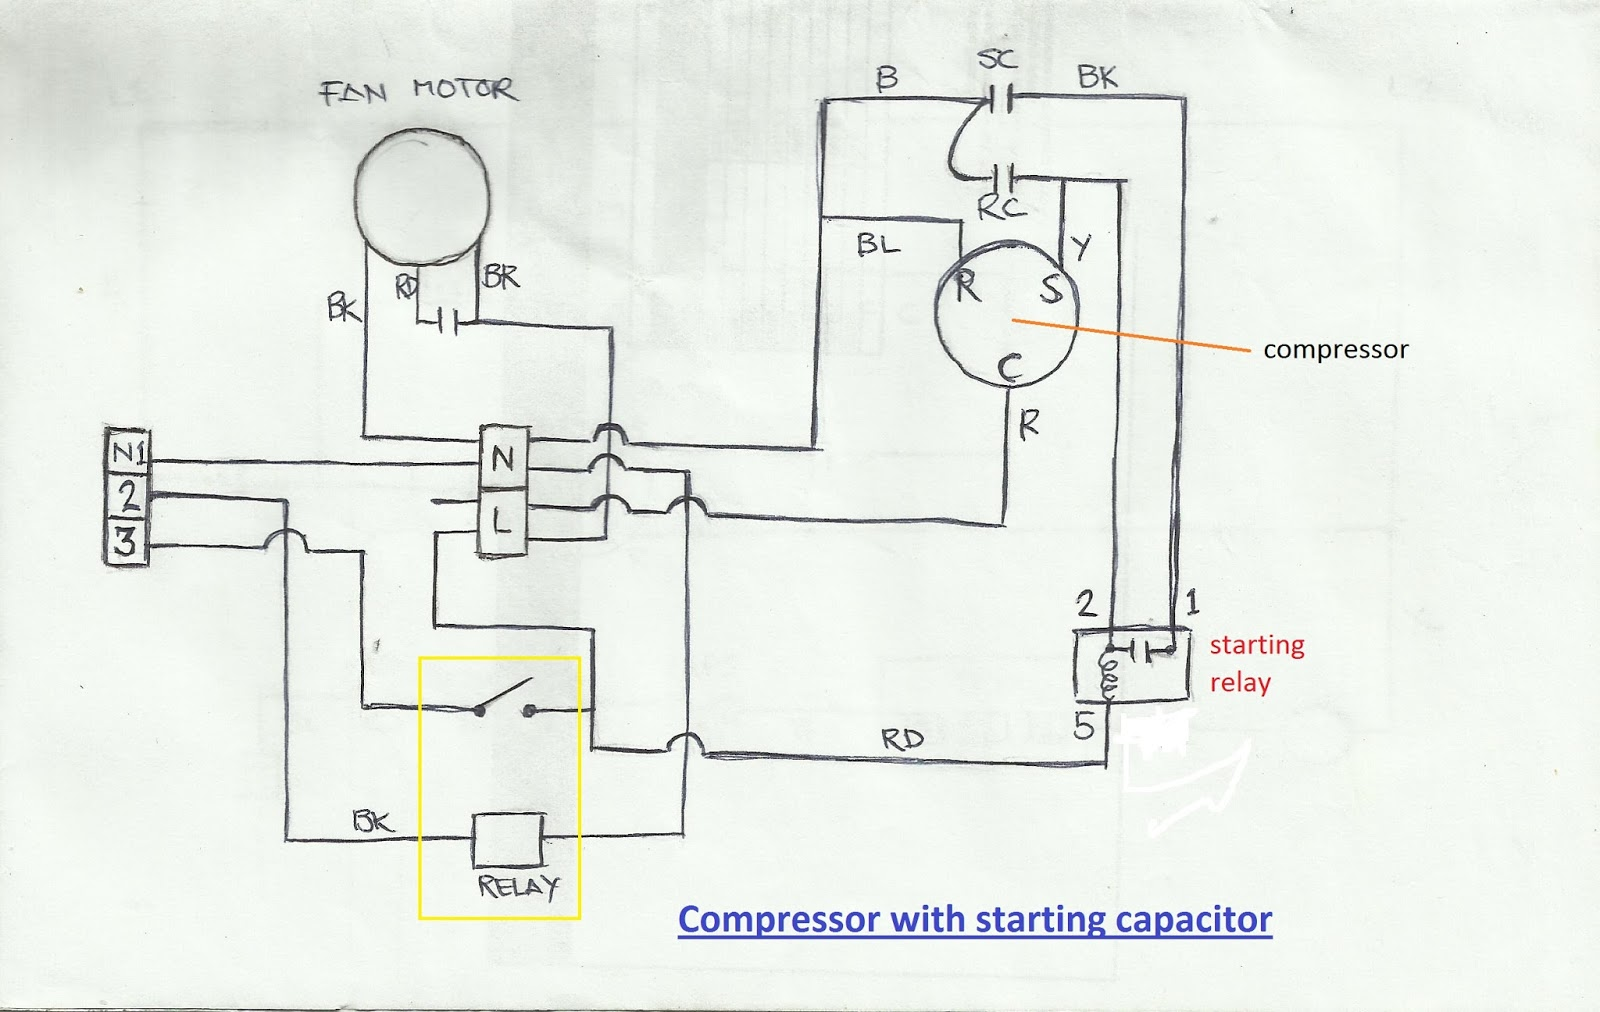 18 refrigeration and air conditioning repair wiring diagram of automatic tubig machine wiring diagram at crackthecode.co